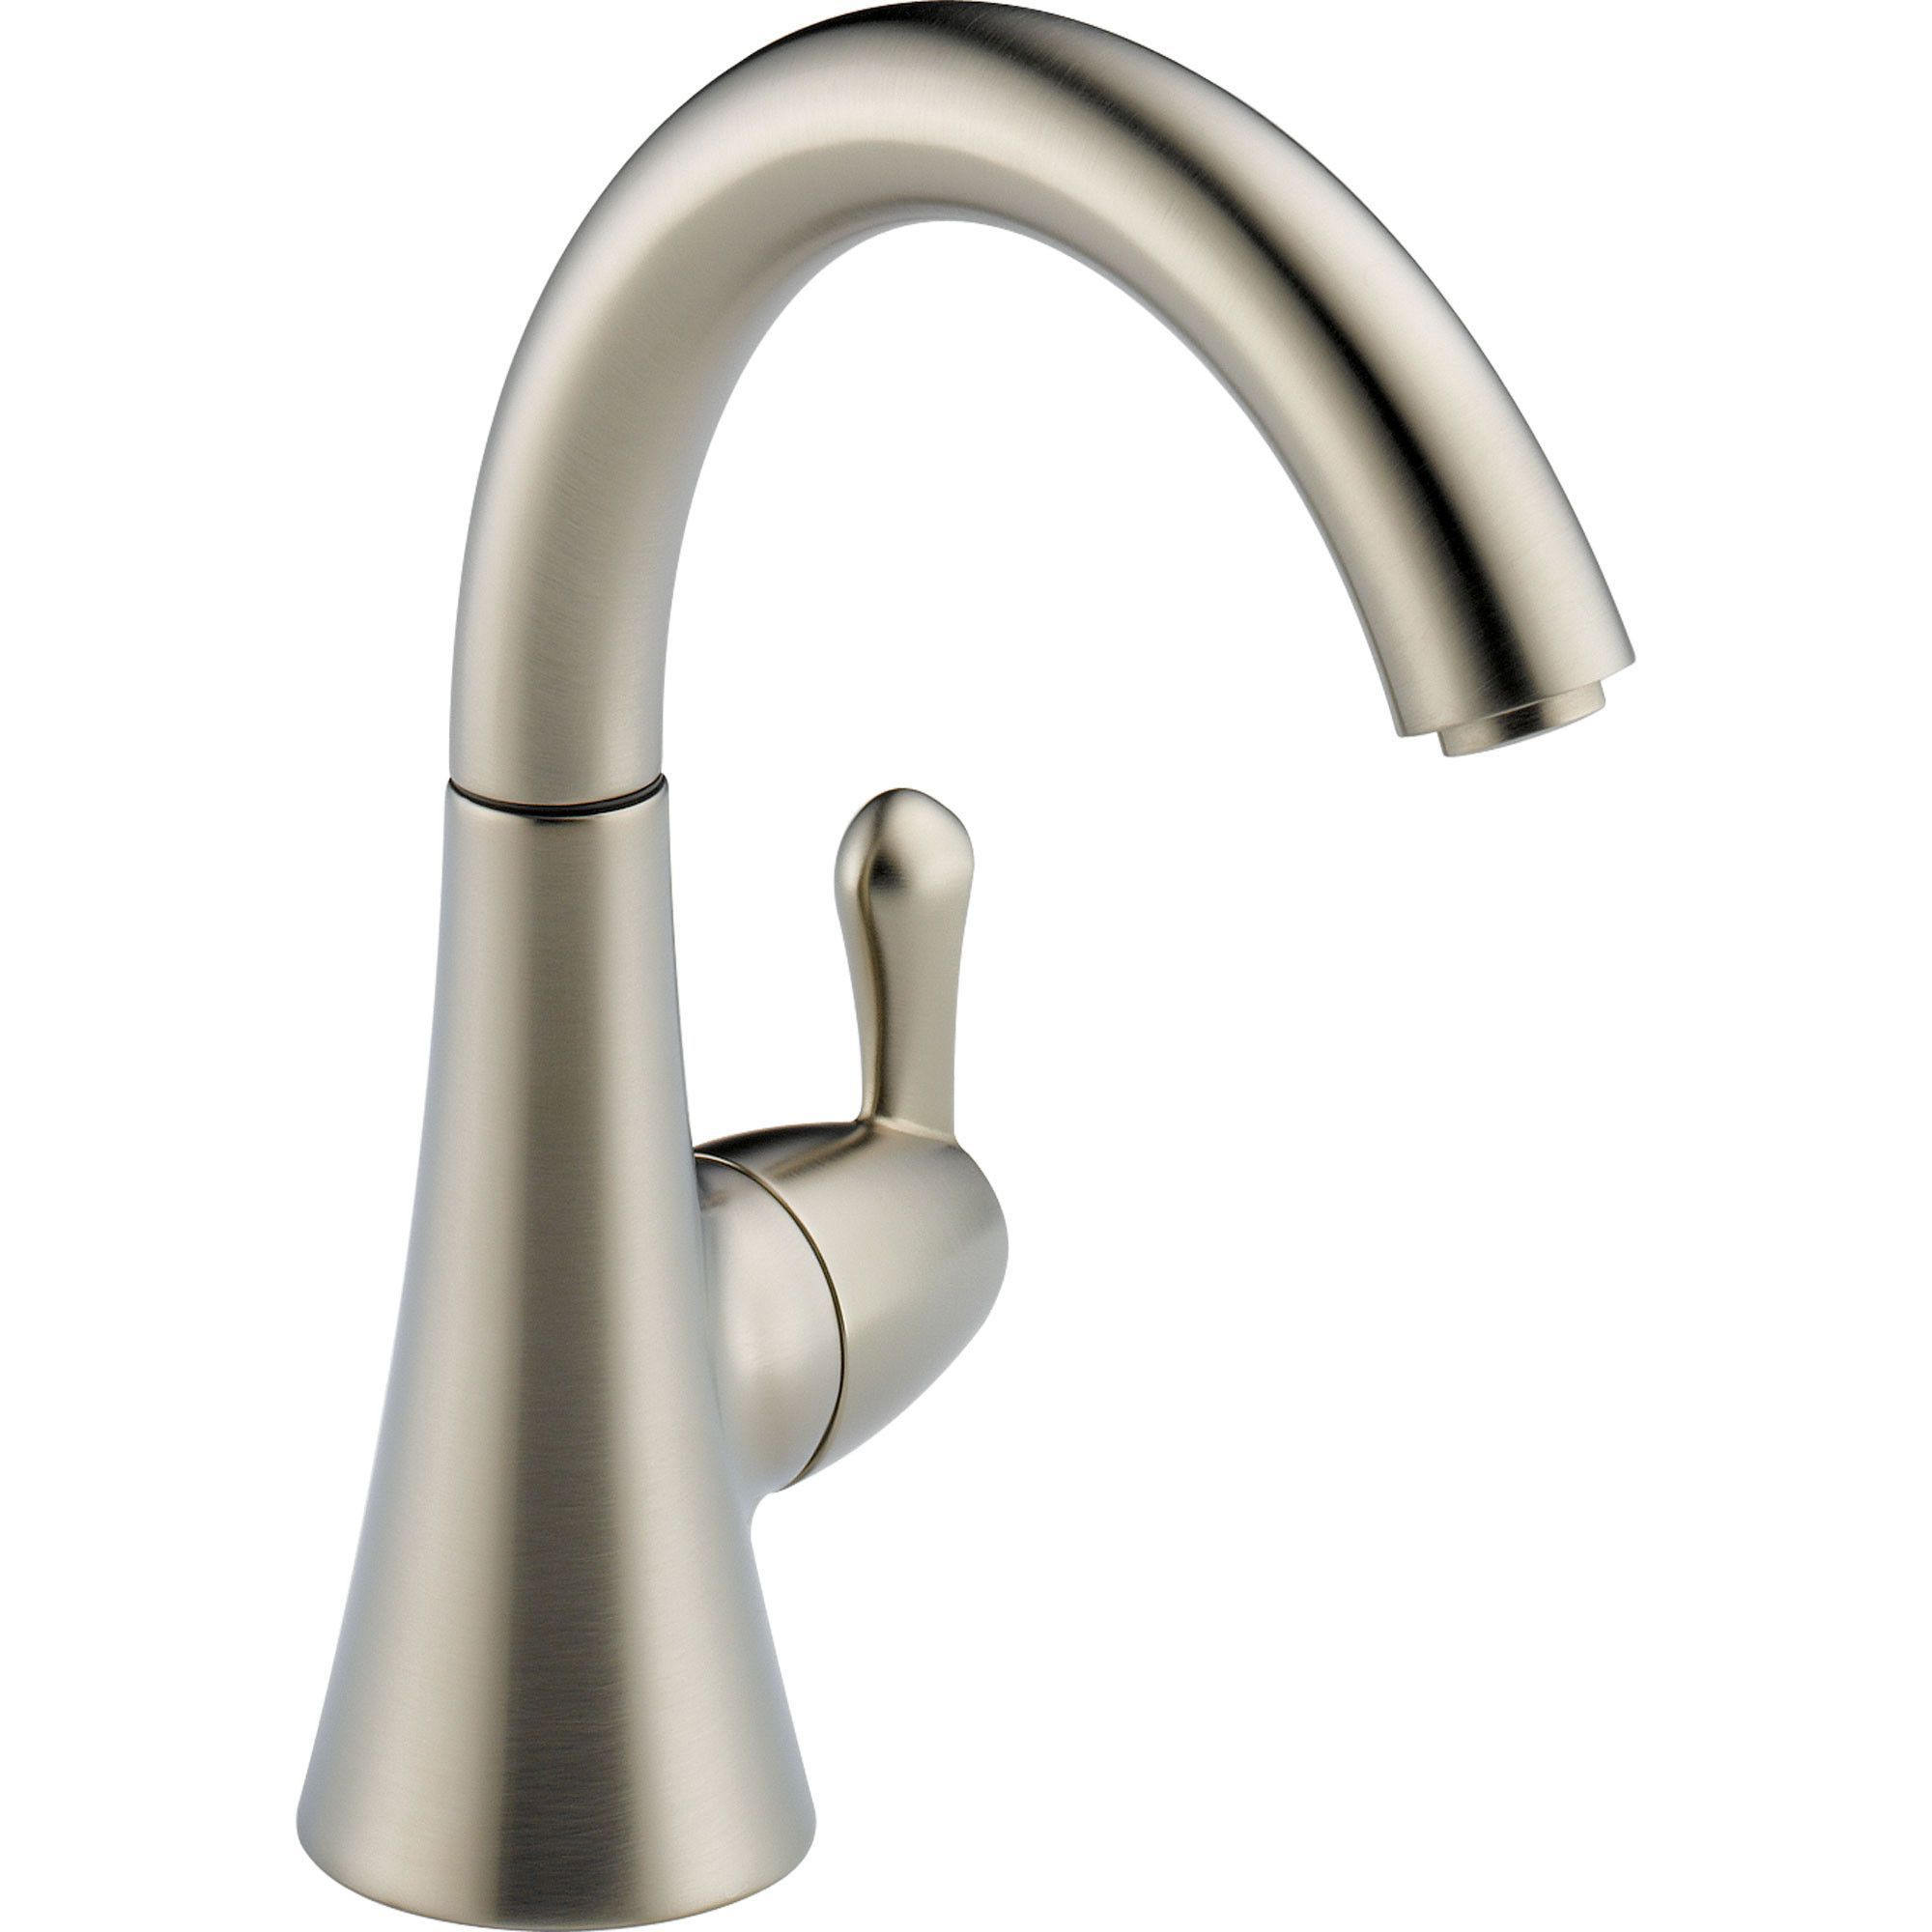 euro only faucet brilliance brizo warranty faucets beverage includes ss stainless com lifetime cold